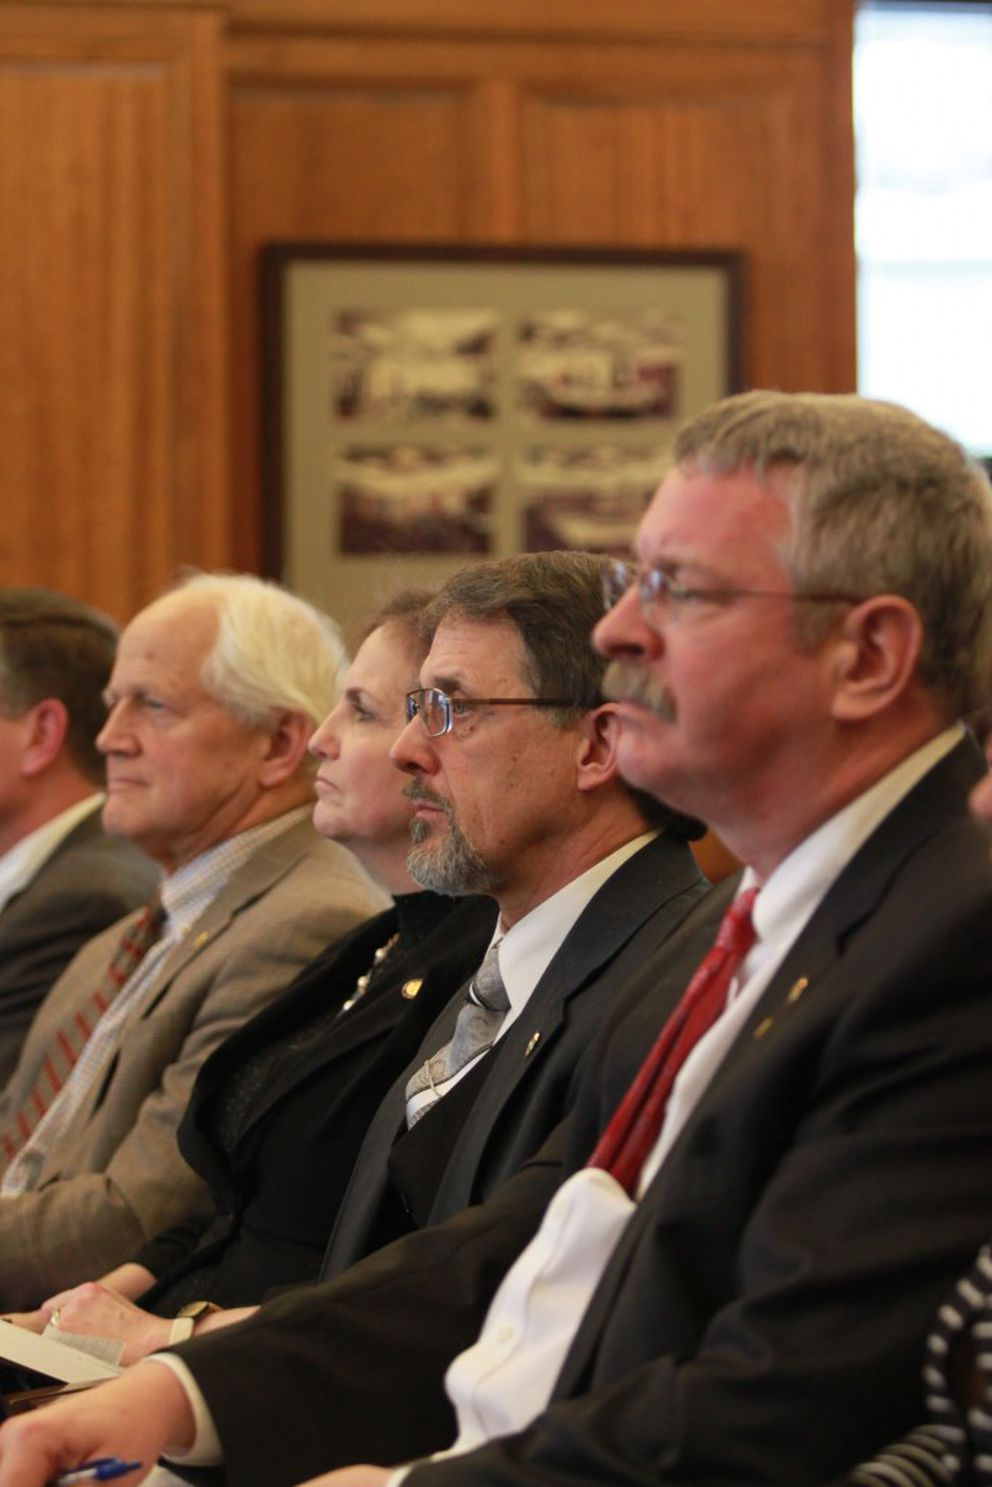 Members of the Alaska House Republican minority sit in the audience of a House Finance Committee meeting Wednesday at the Capitol in Juneau. From left, Chris Birch of Anchorage, DeLena Johnson of Palmer, George Rauscher of Sutton, and Dan Saddler of Eagle River. (Nathaniel Herz / Alaska Dispatch News)